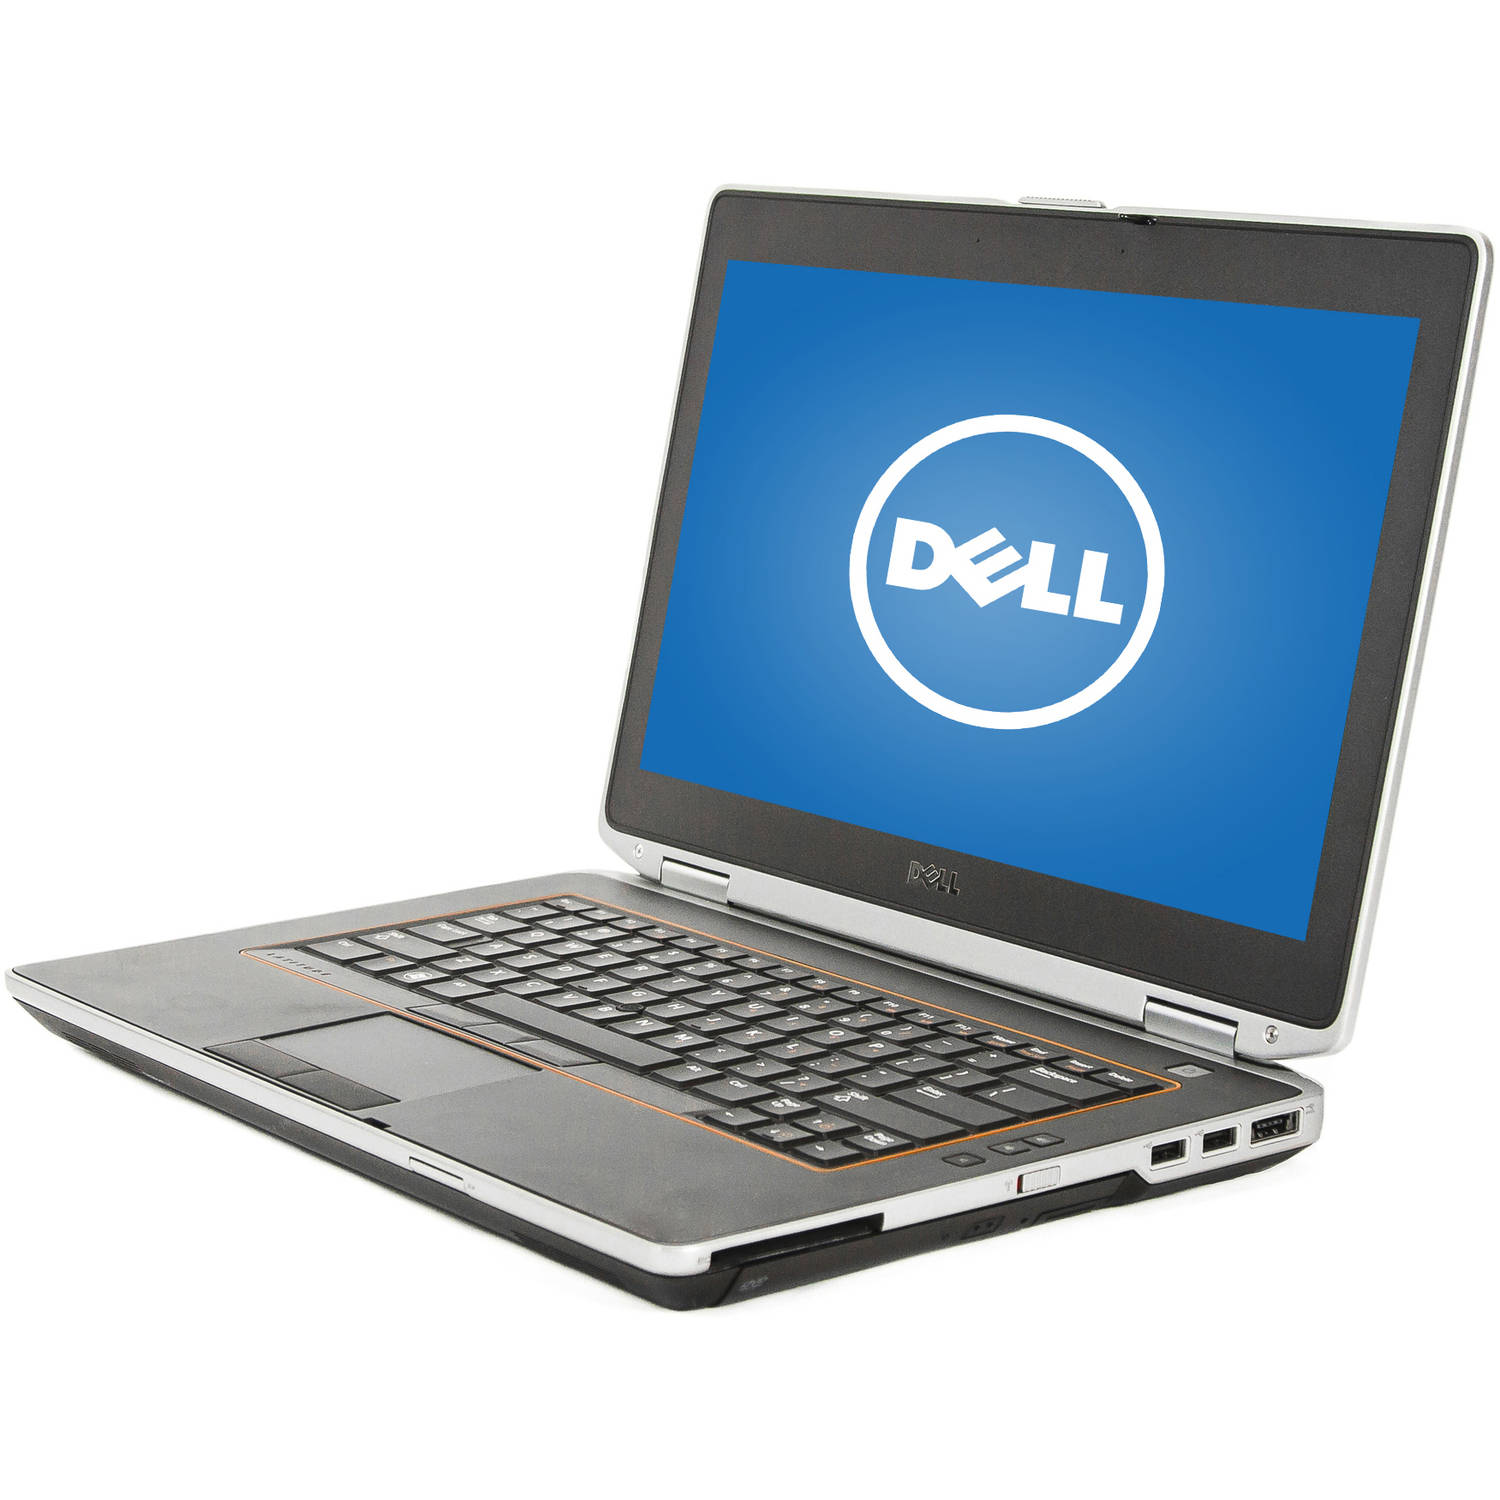 "Refurbished Dell Black 14"" E6420 Laptop PC with Intel Core i5 Processor, 4GB Memory, 250GB Hard Drive and Windows 7 Professional"